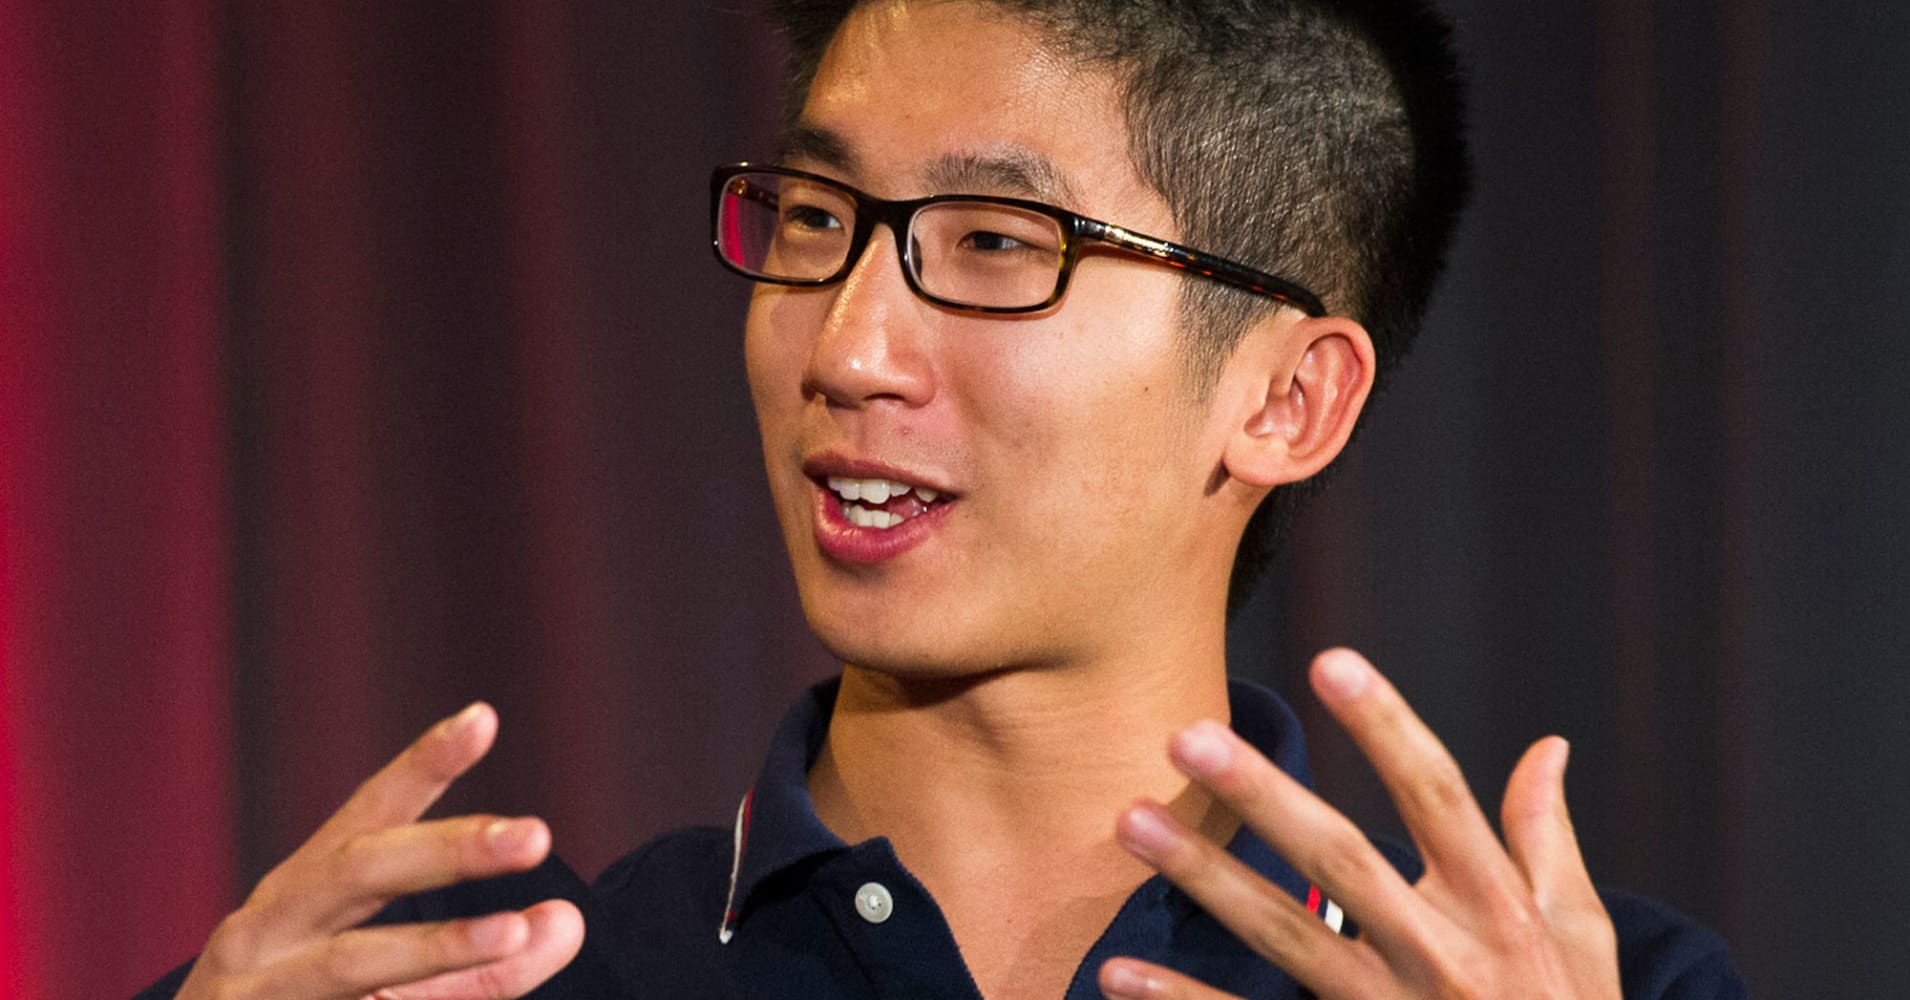 Brian Wong, chief executive officer and co-founder of mobile advertising company Kiip.